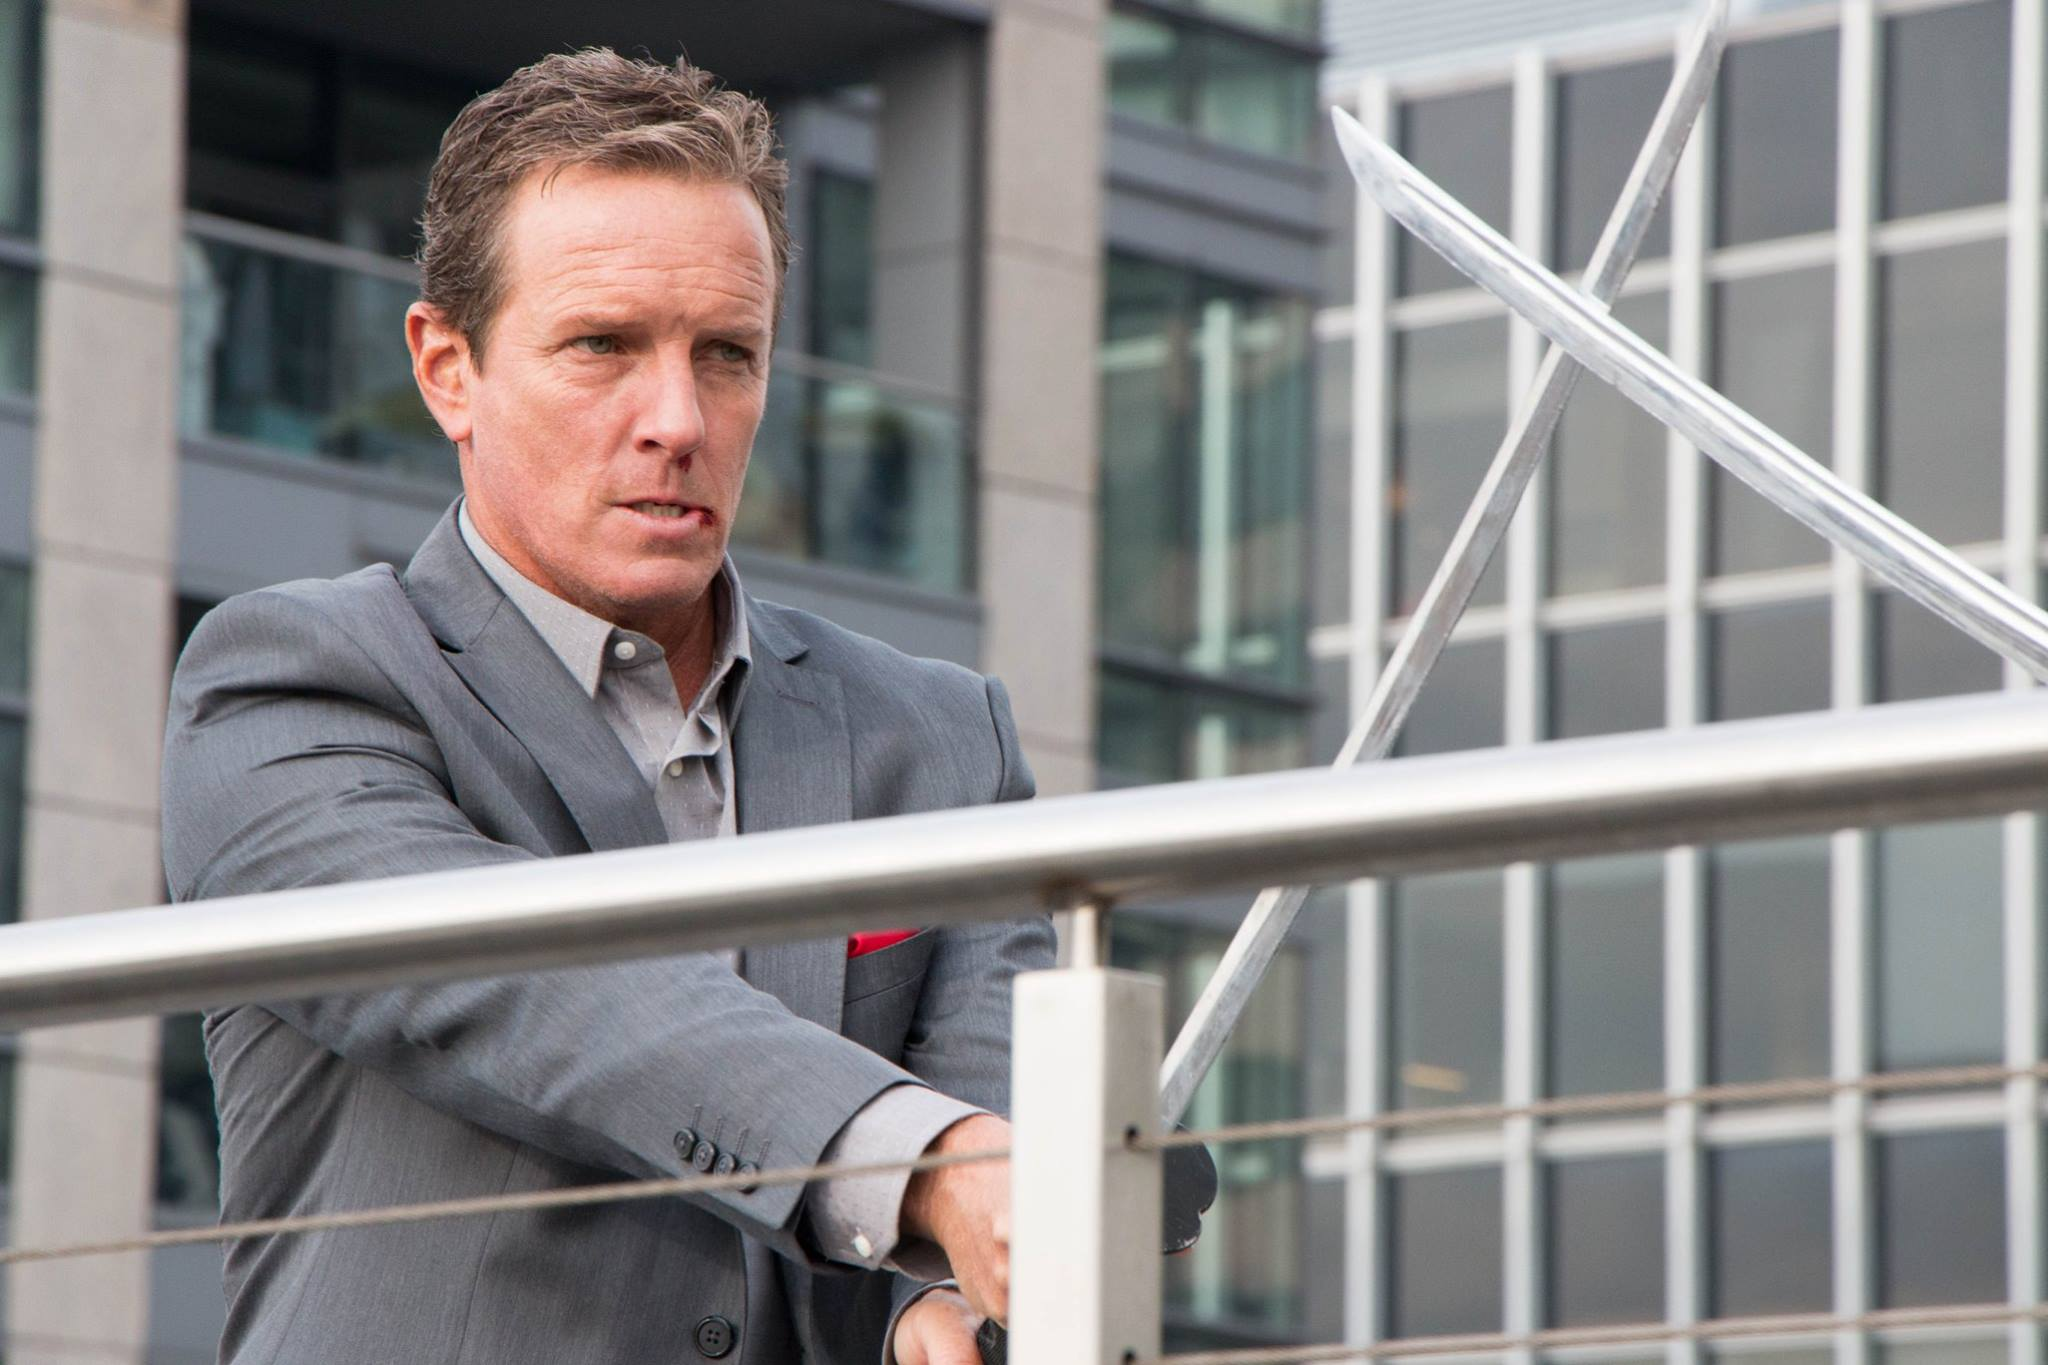 the fastest way to share new content linden ashby beta test interview